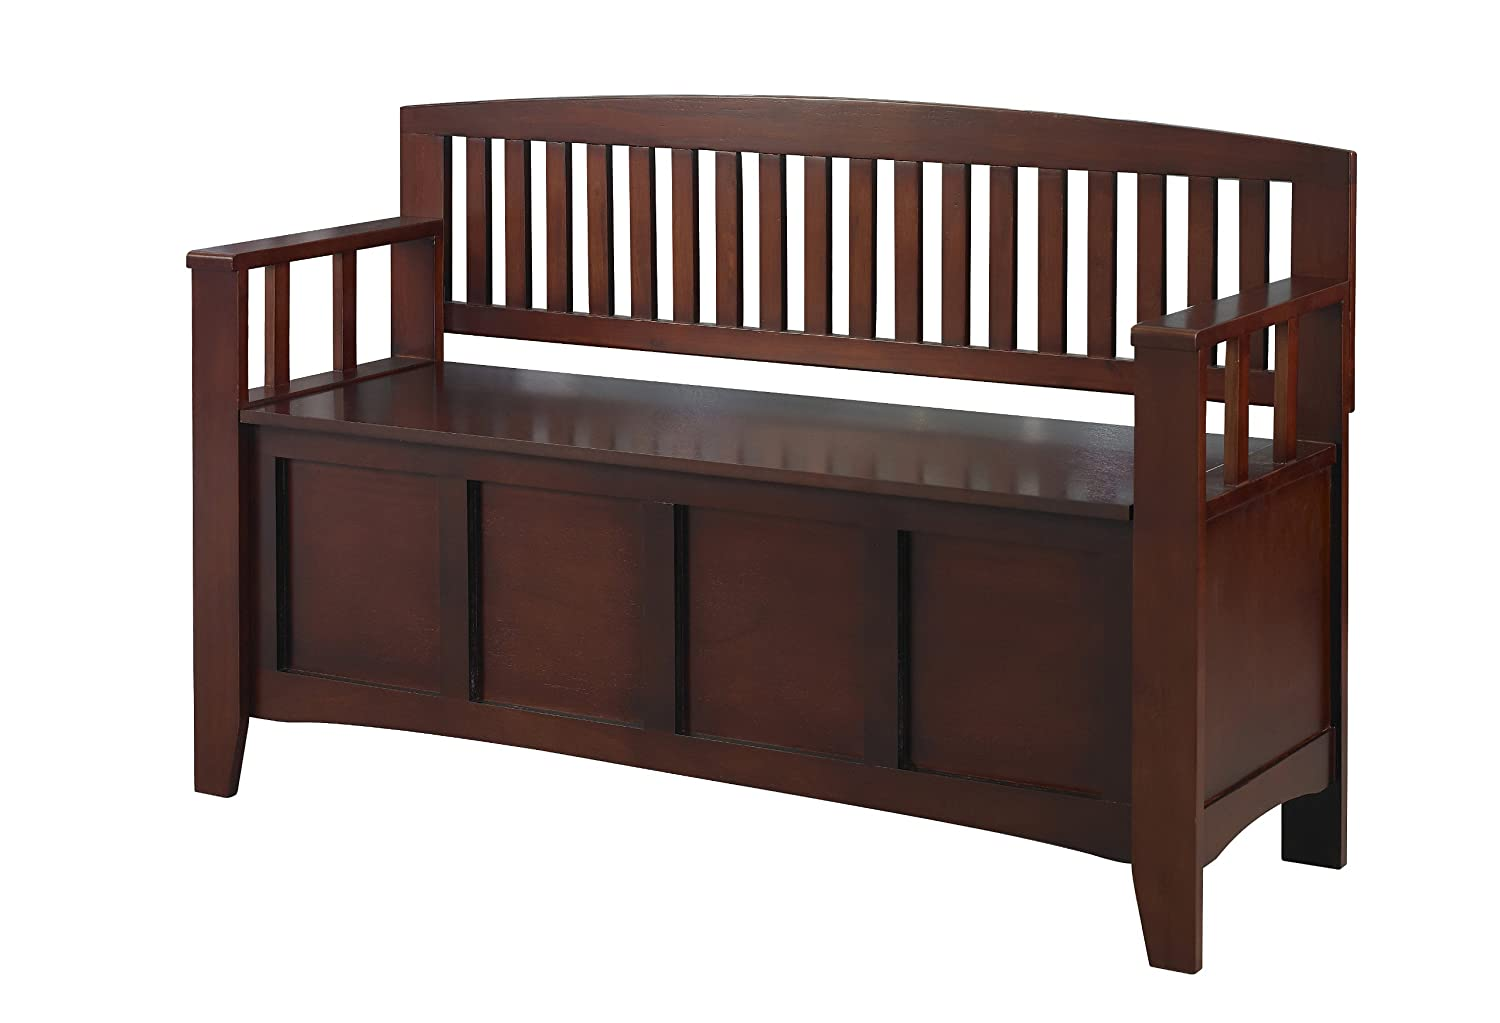 Bedroom bench with arms - Linon Home Decor Cynthia Storage Bench